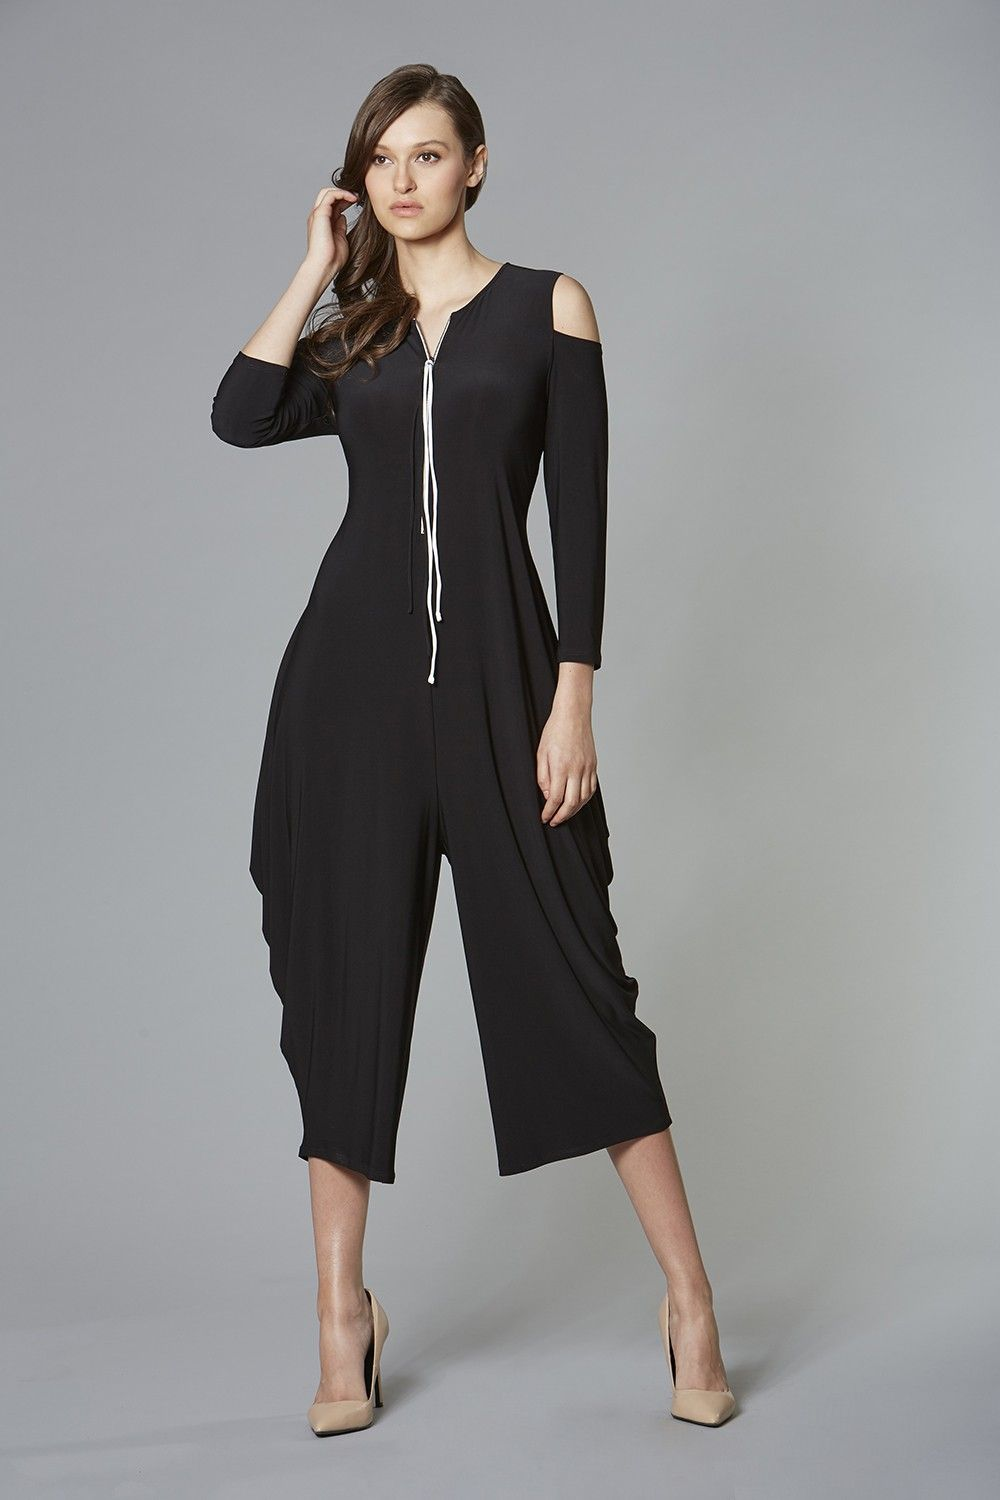 Style Number: 200 Color: BlackȏVanilla Material: 20